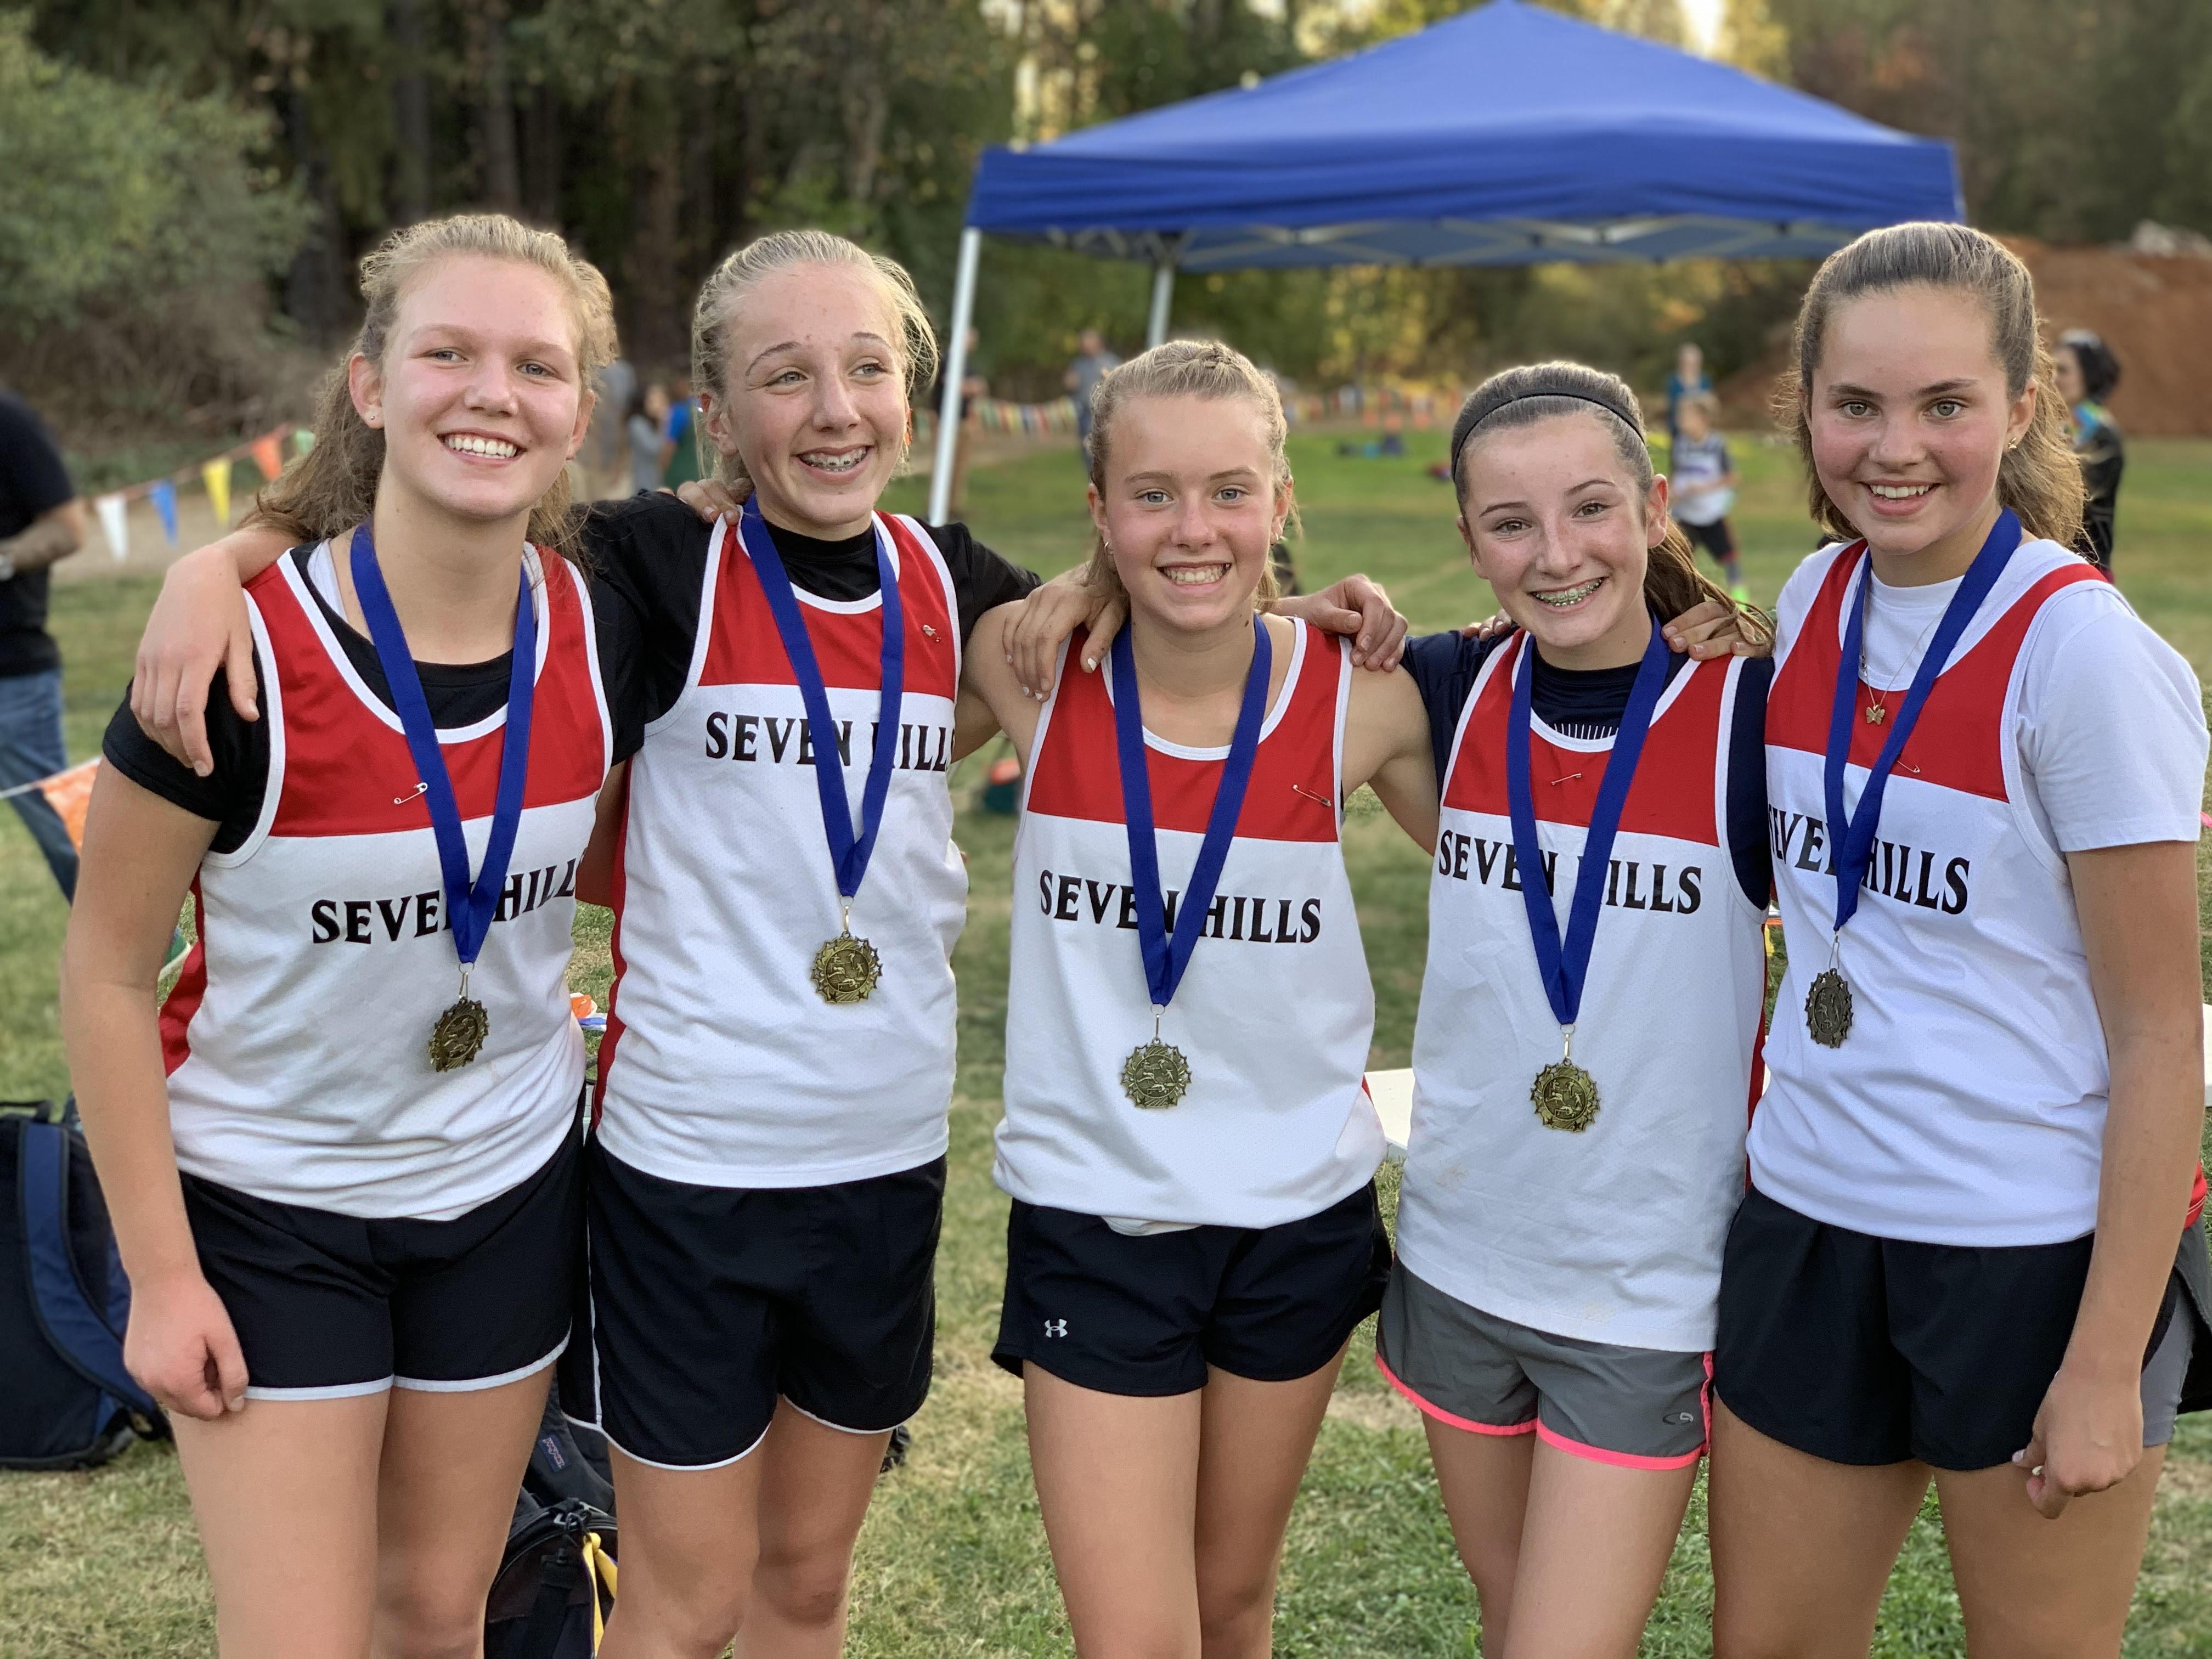 Seven Hills Cross Country Girls Team